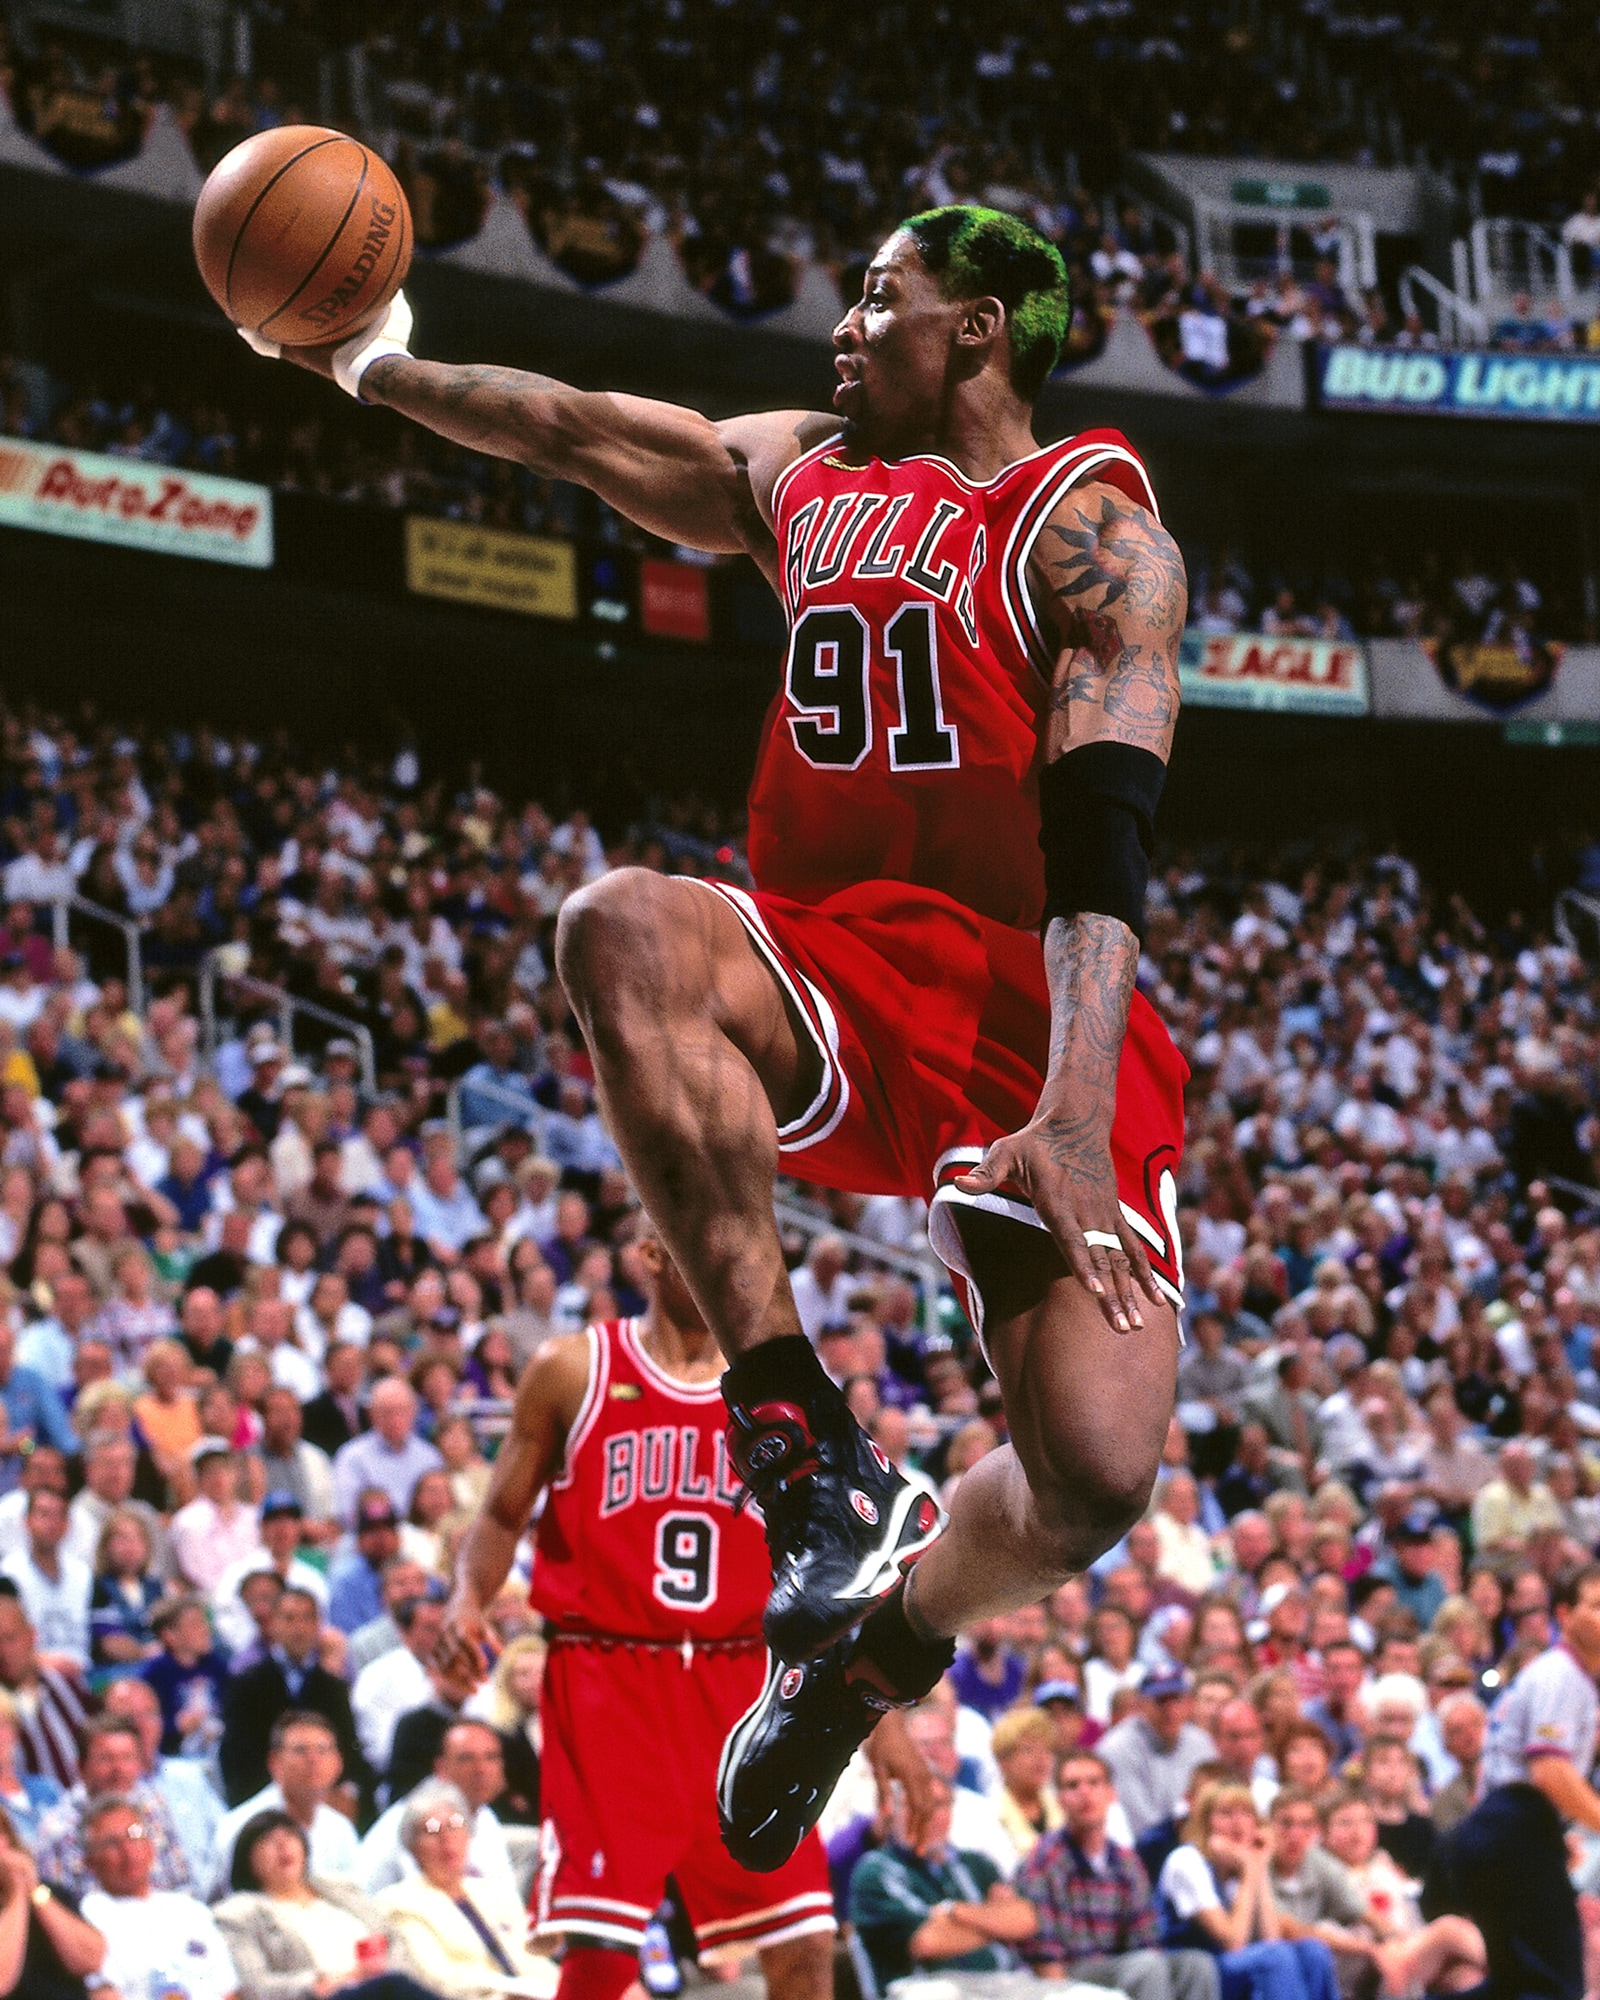 Rodman was one of the best rebounders of all time.